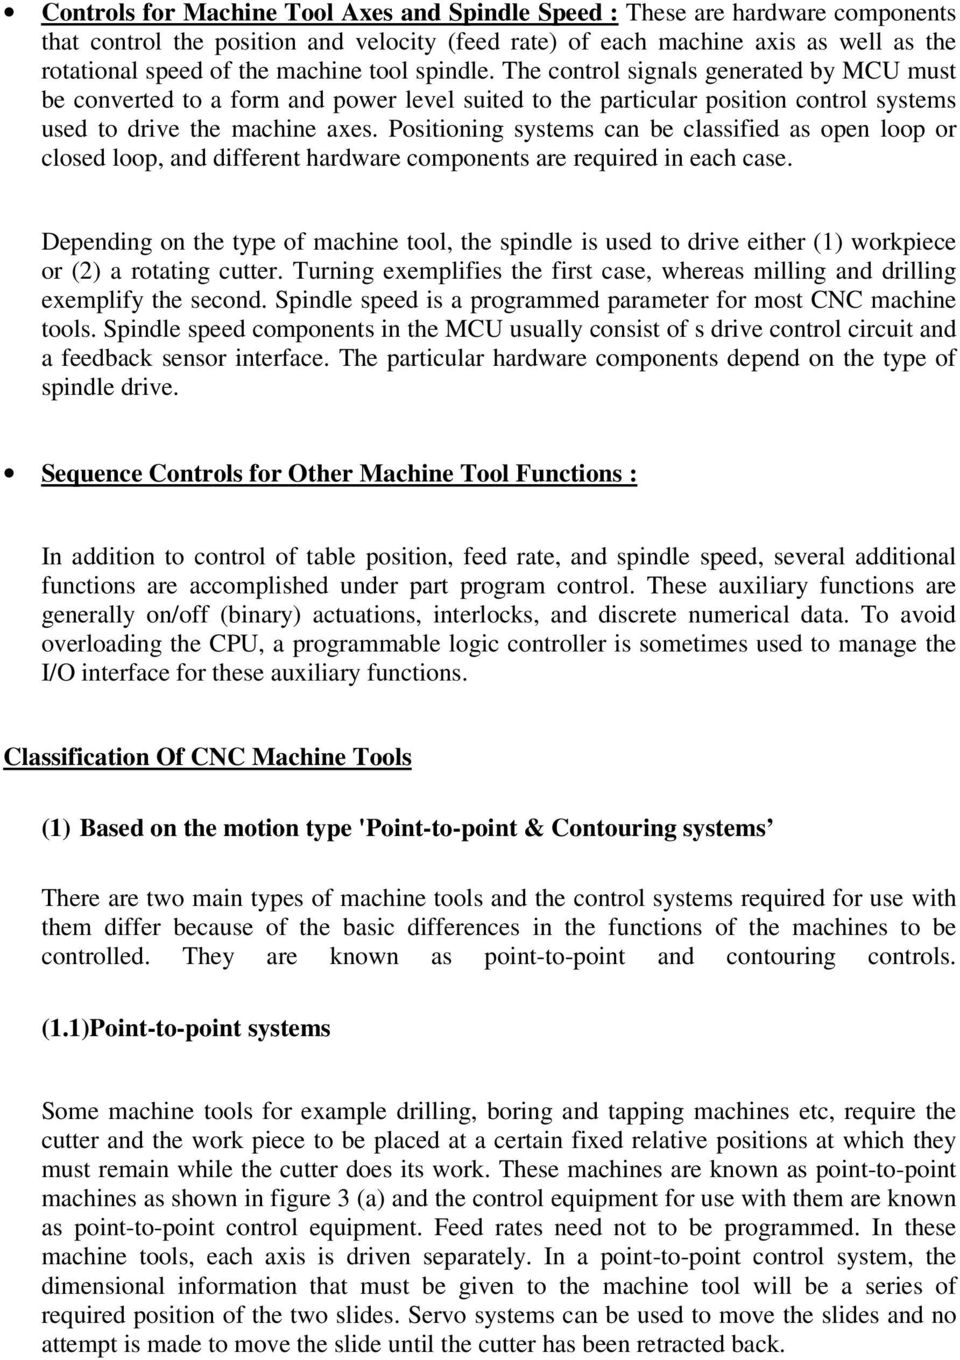 Introduction To Computer Numerical Control Pdf Rotative Speed Regulator Borer Driller Controller Positioning Systems Can Be Classified As Open Loop Or Closed And Different Hardware Components